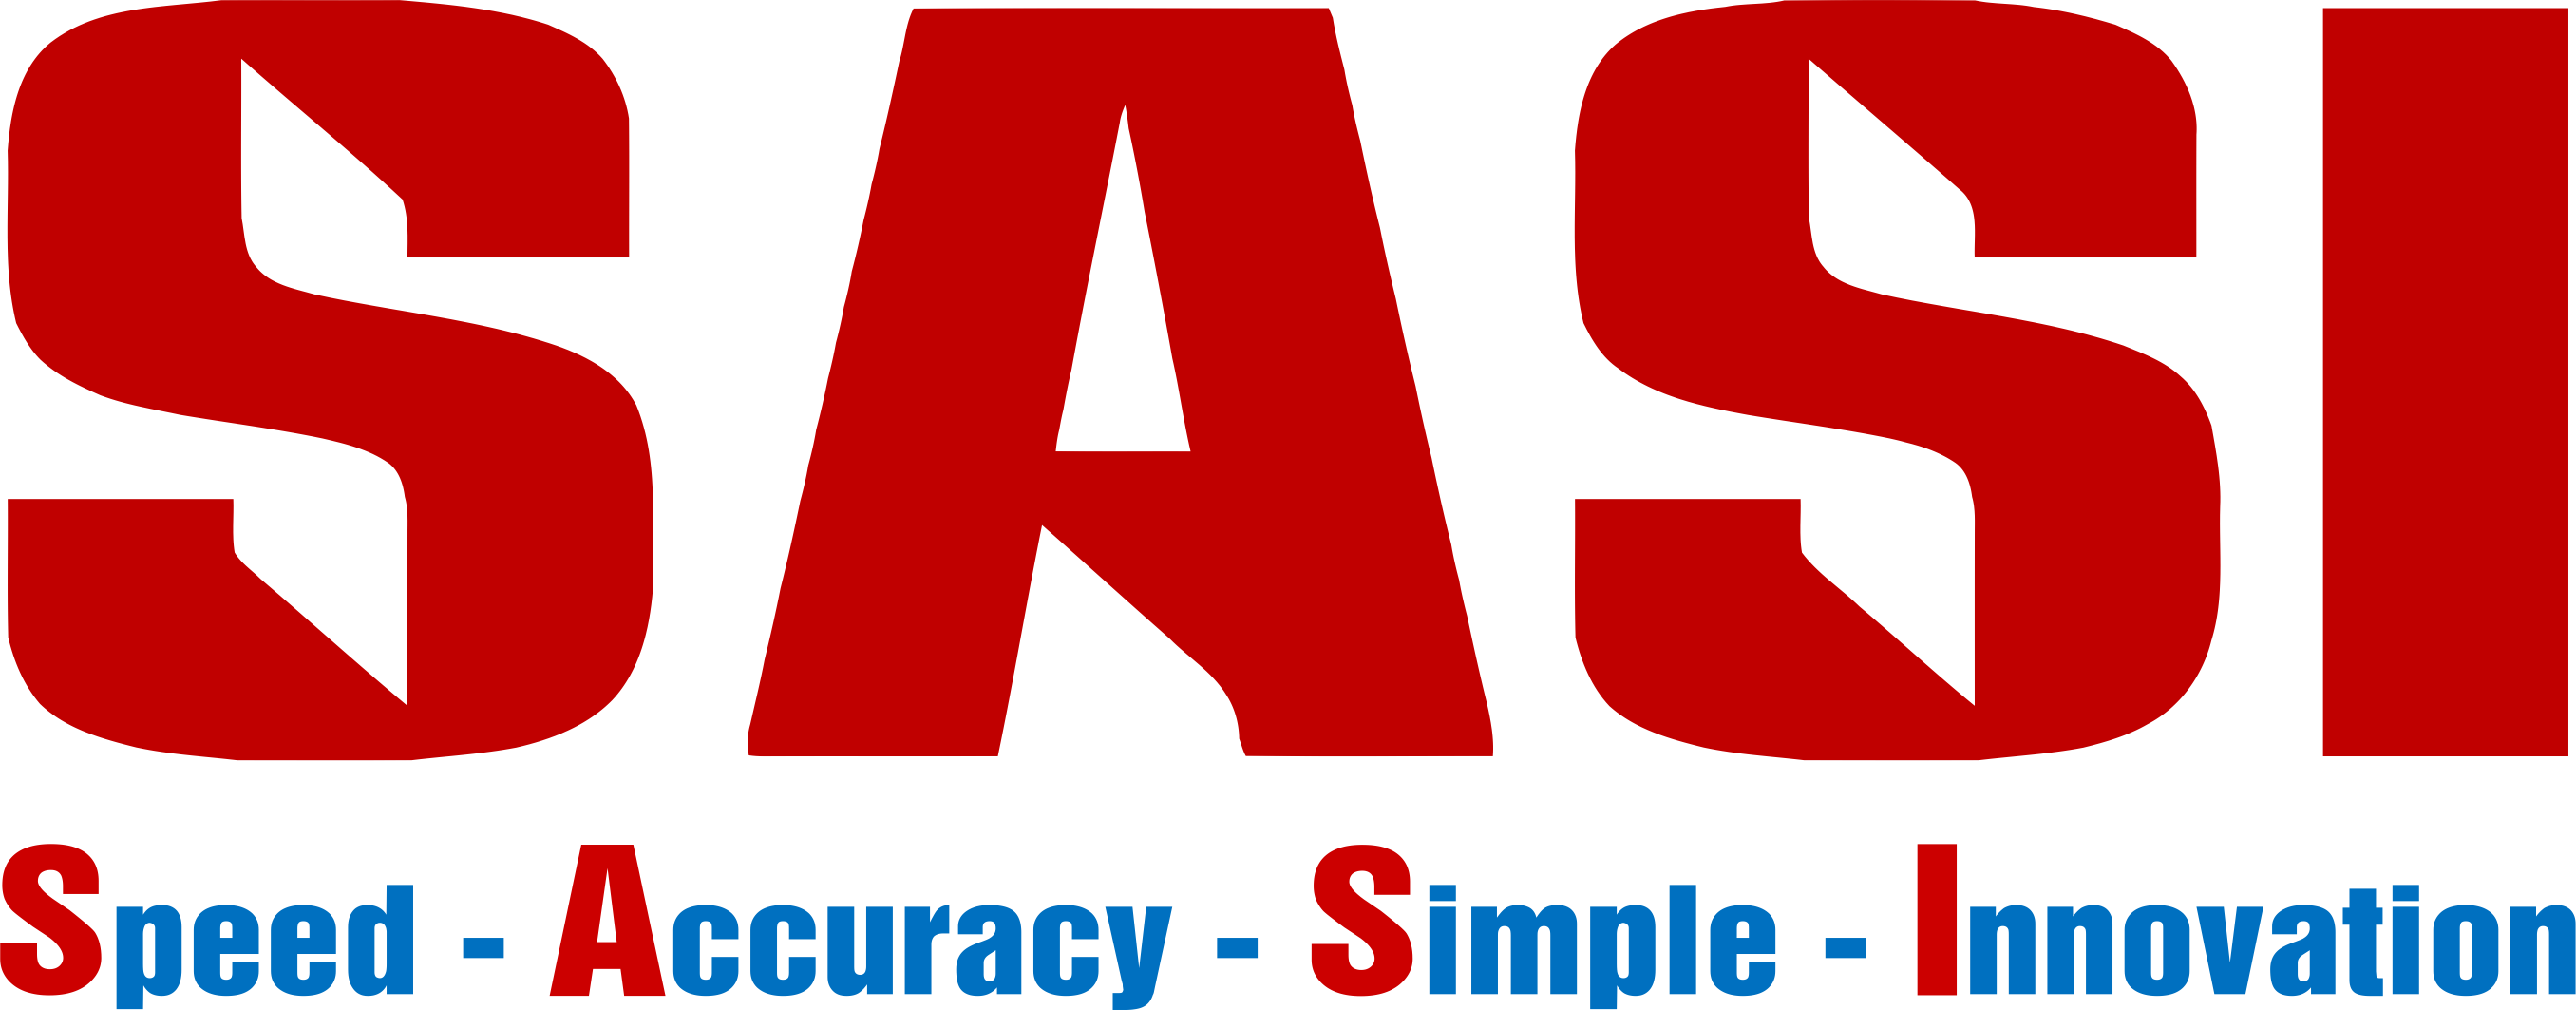 SASI JOINT STOCK COMPANY